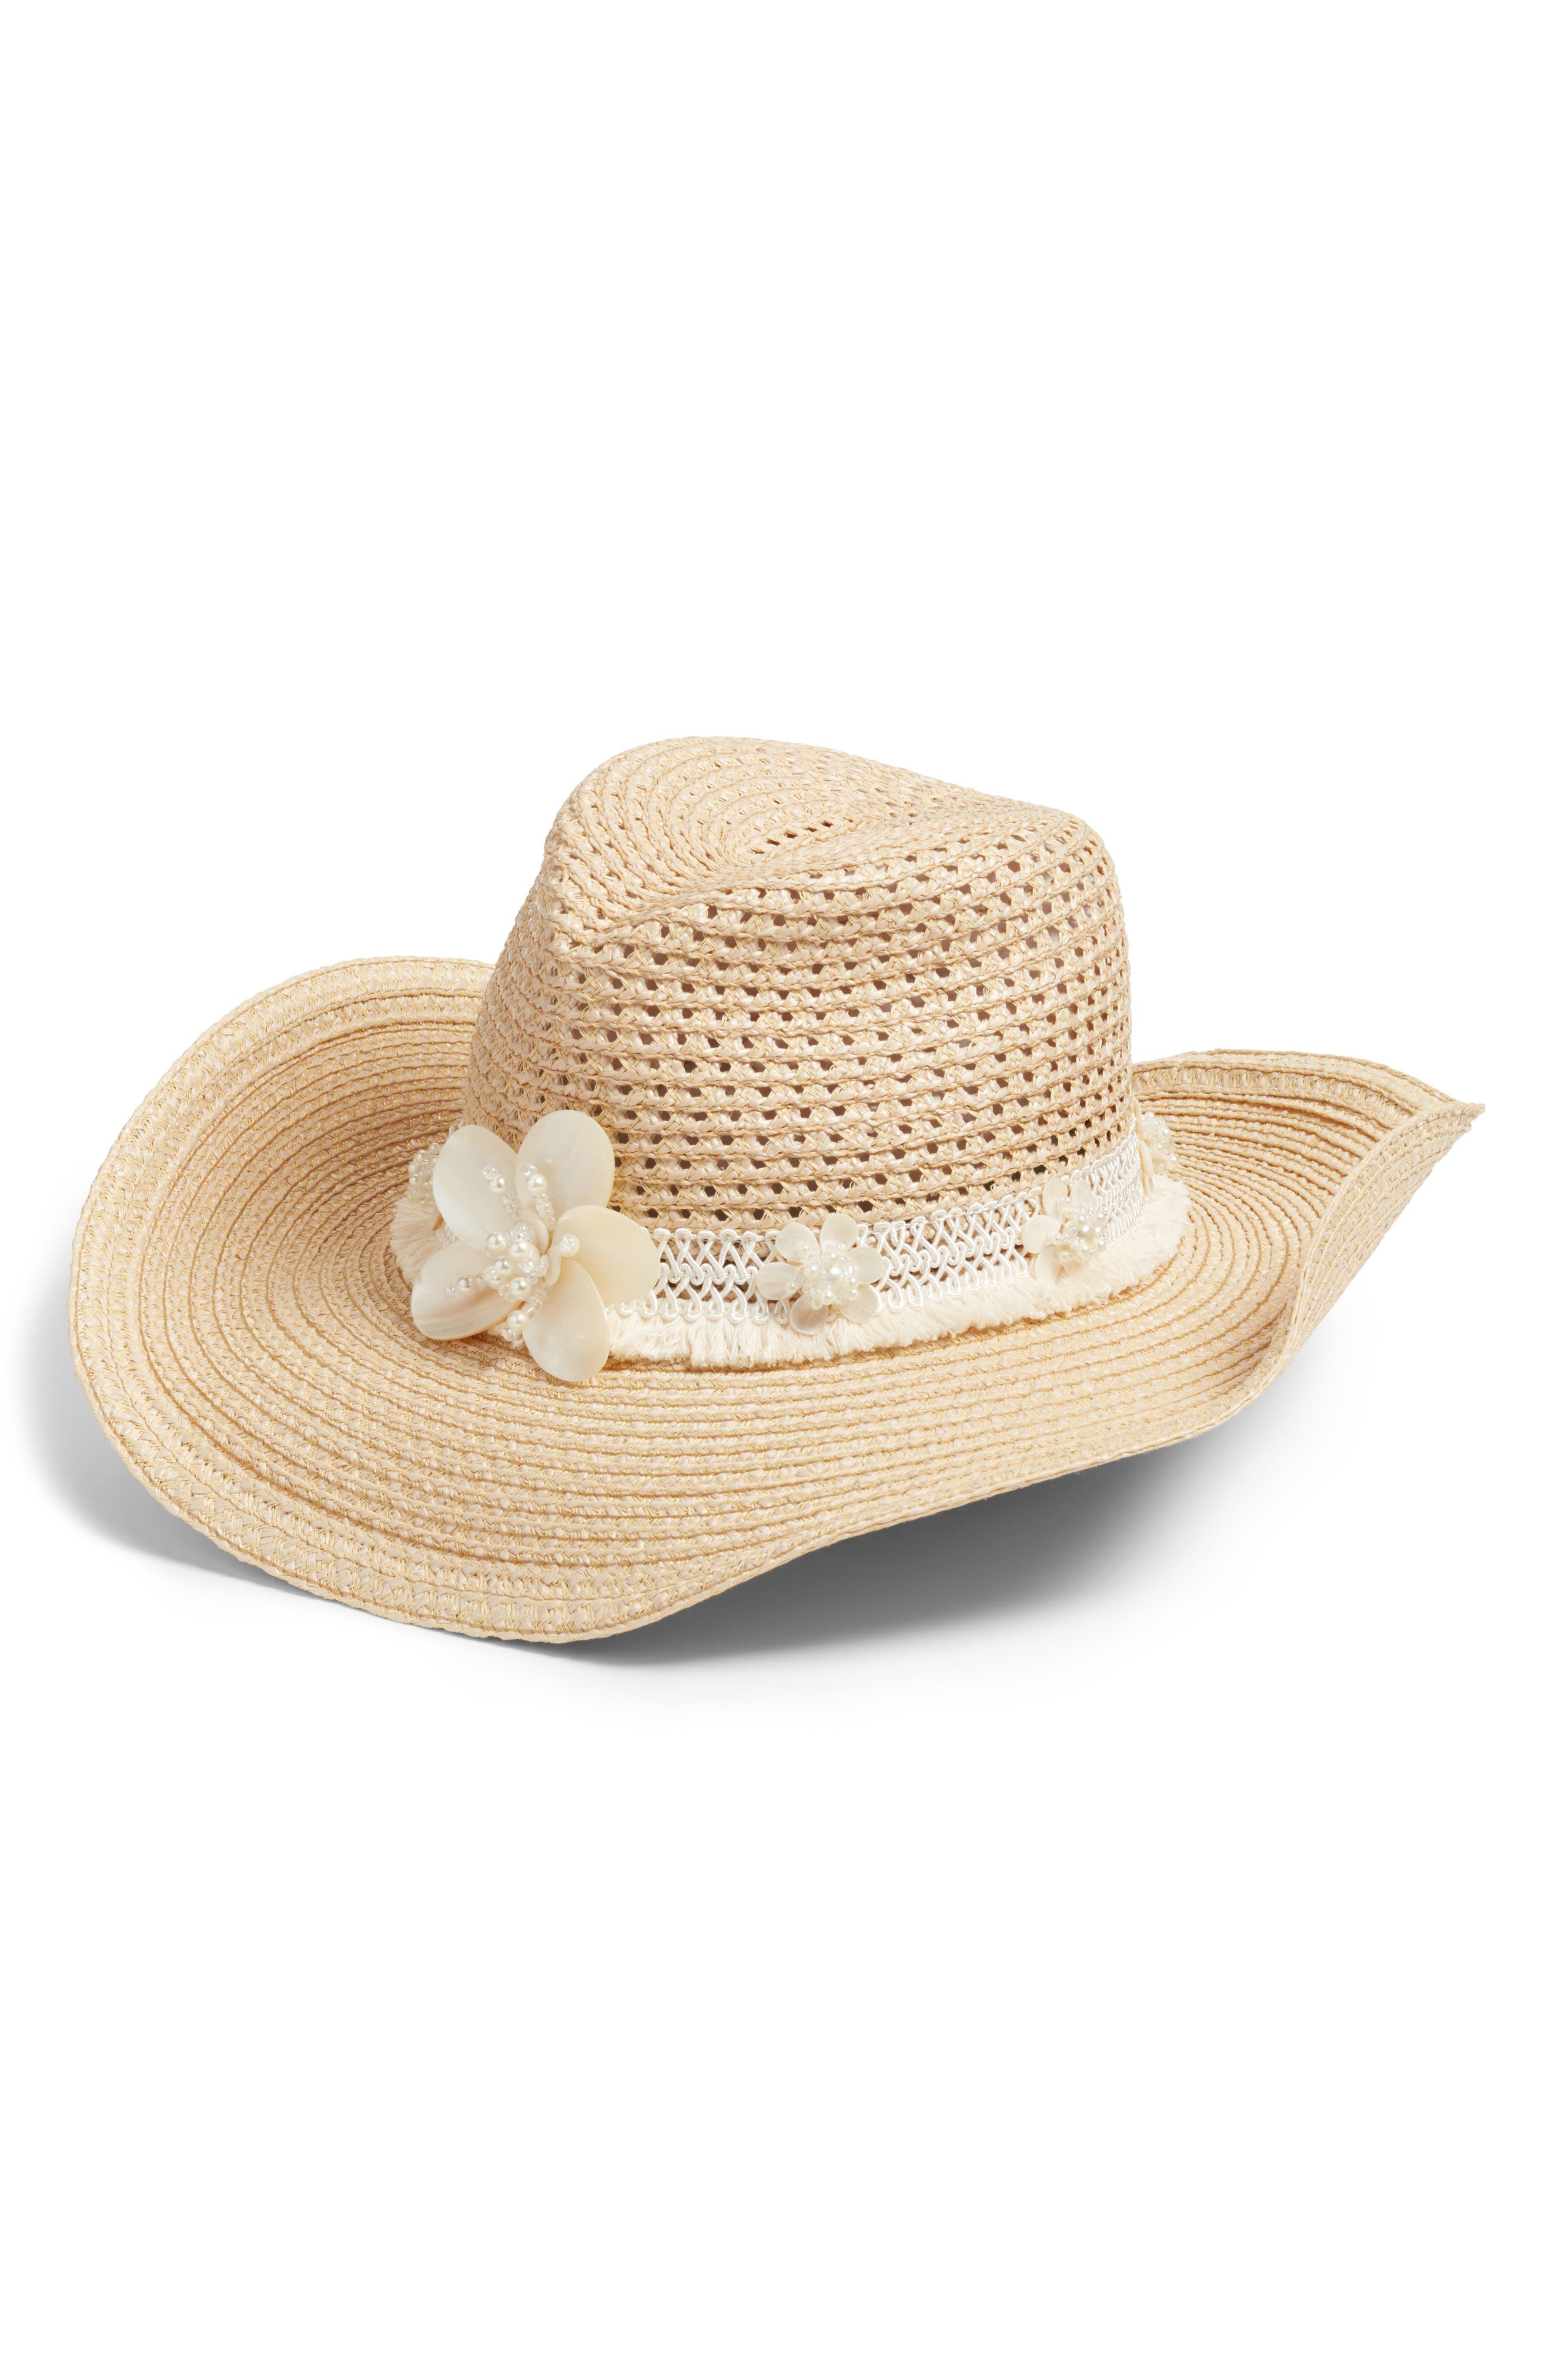 St. Tropez Squishee<sup>®</sup> Western Hat with Mother-of-Pearl Trim,                         Main,                         color, Flax/ White